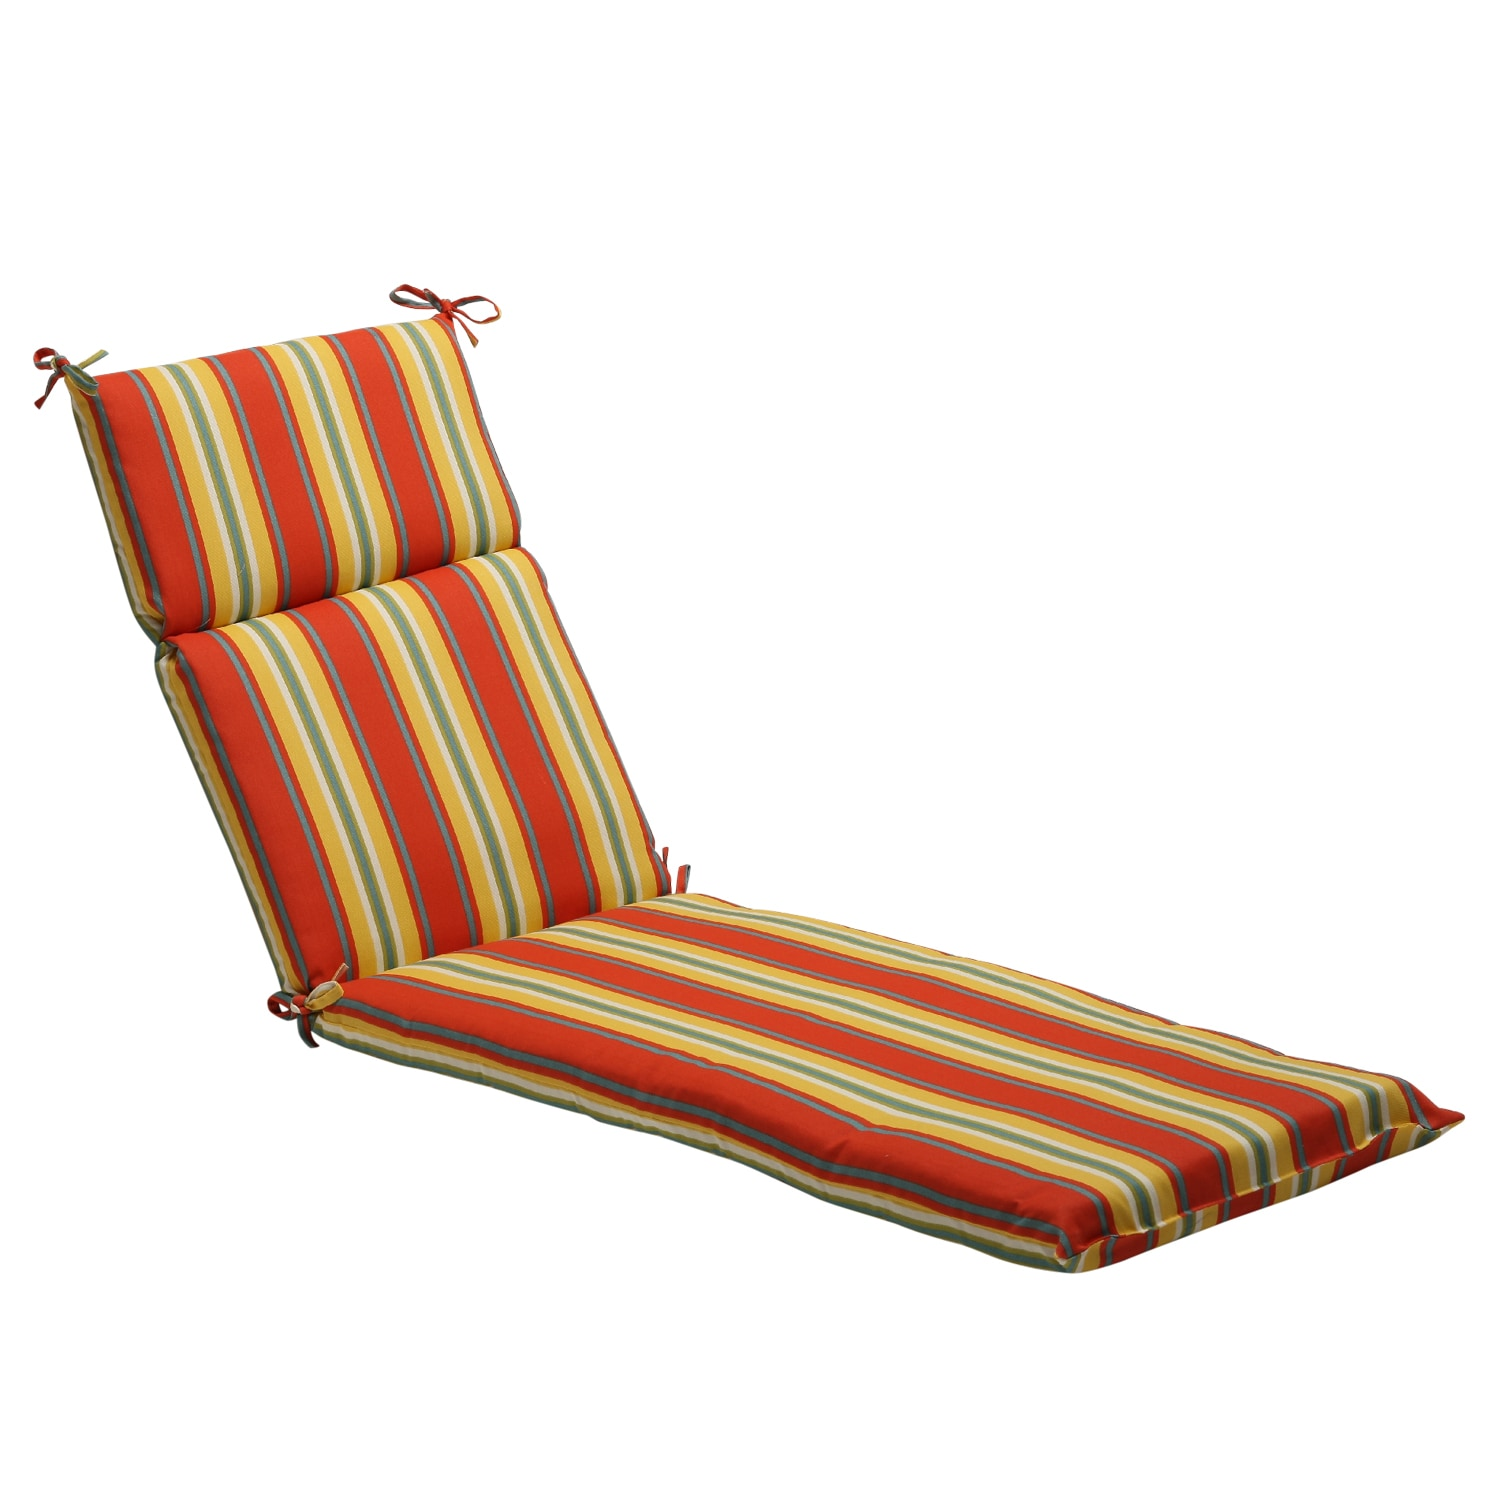 Pillow Perfect Orange Yellow Striped Outdoor Chaise